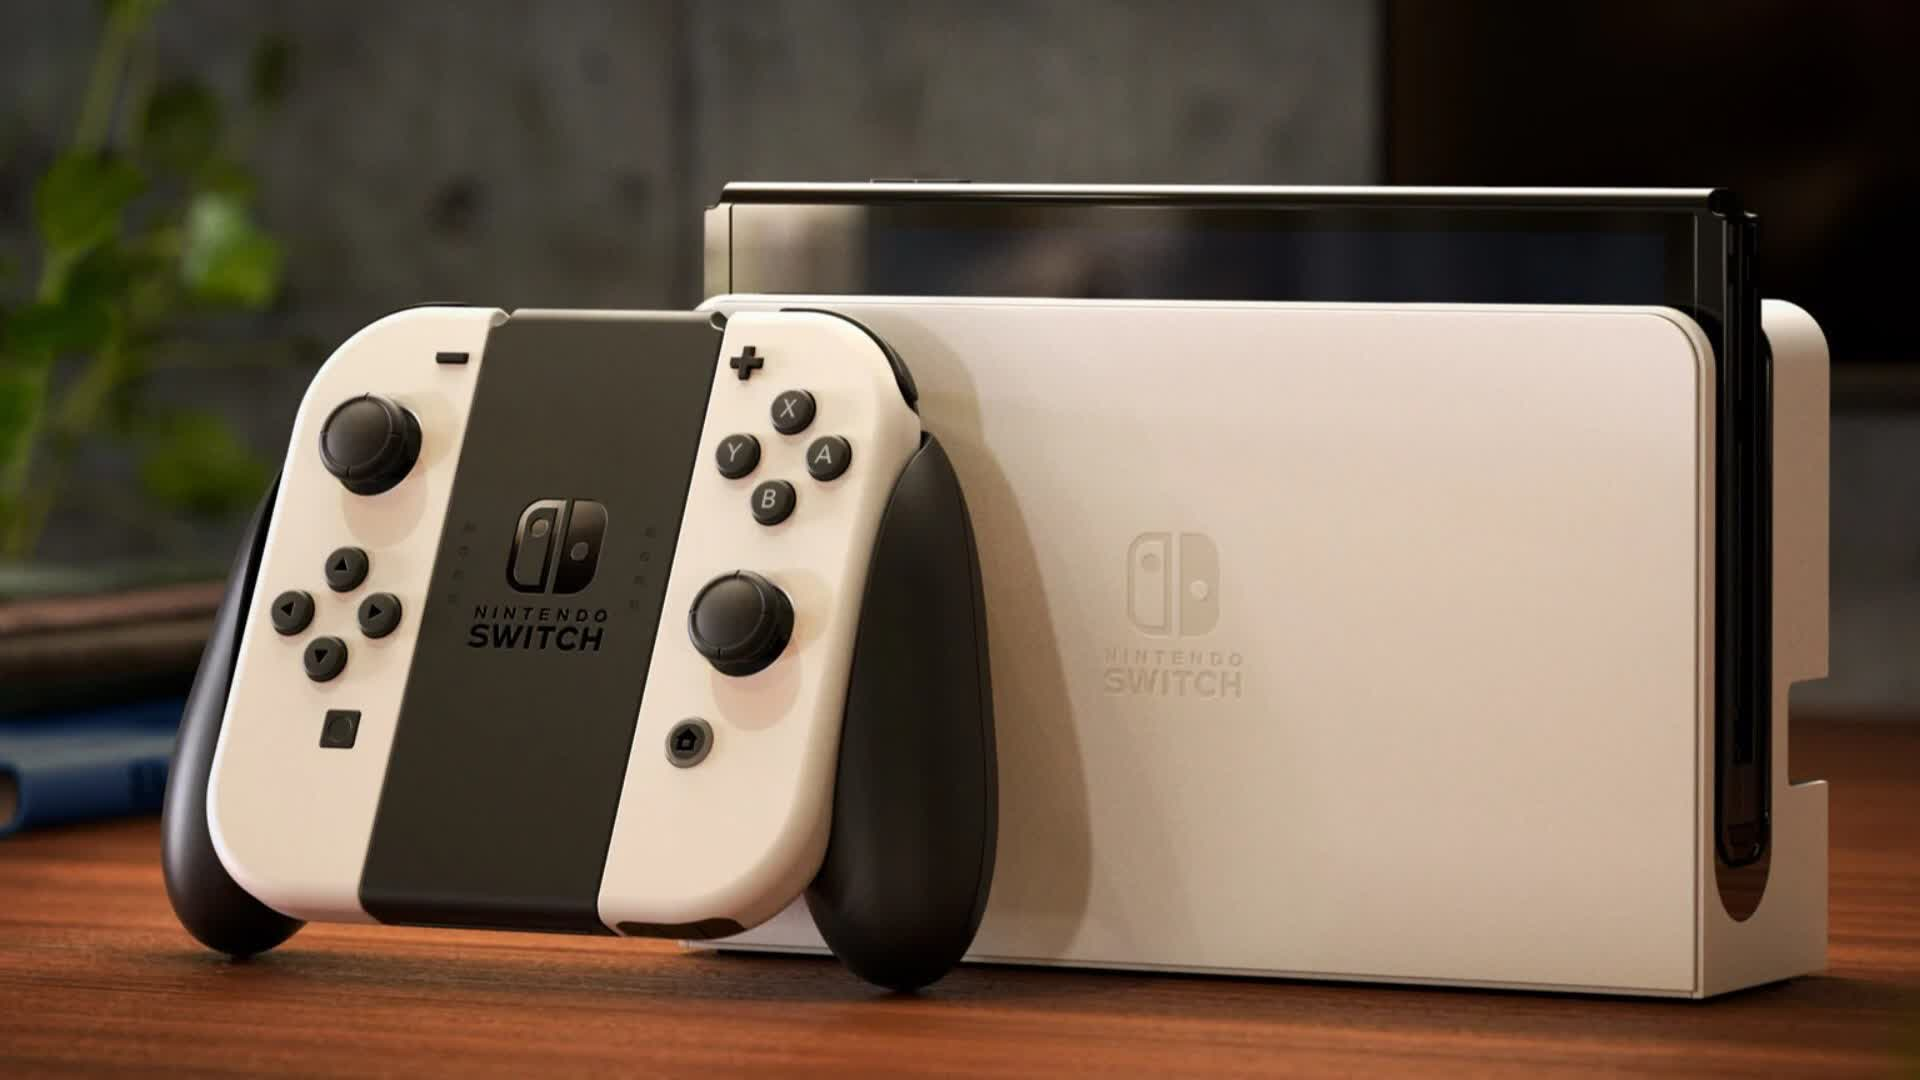 Nintendo is expected to finish 2021 on a high note